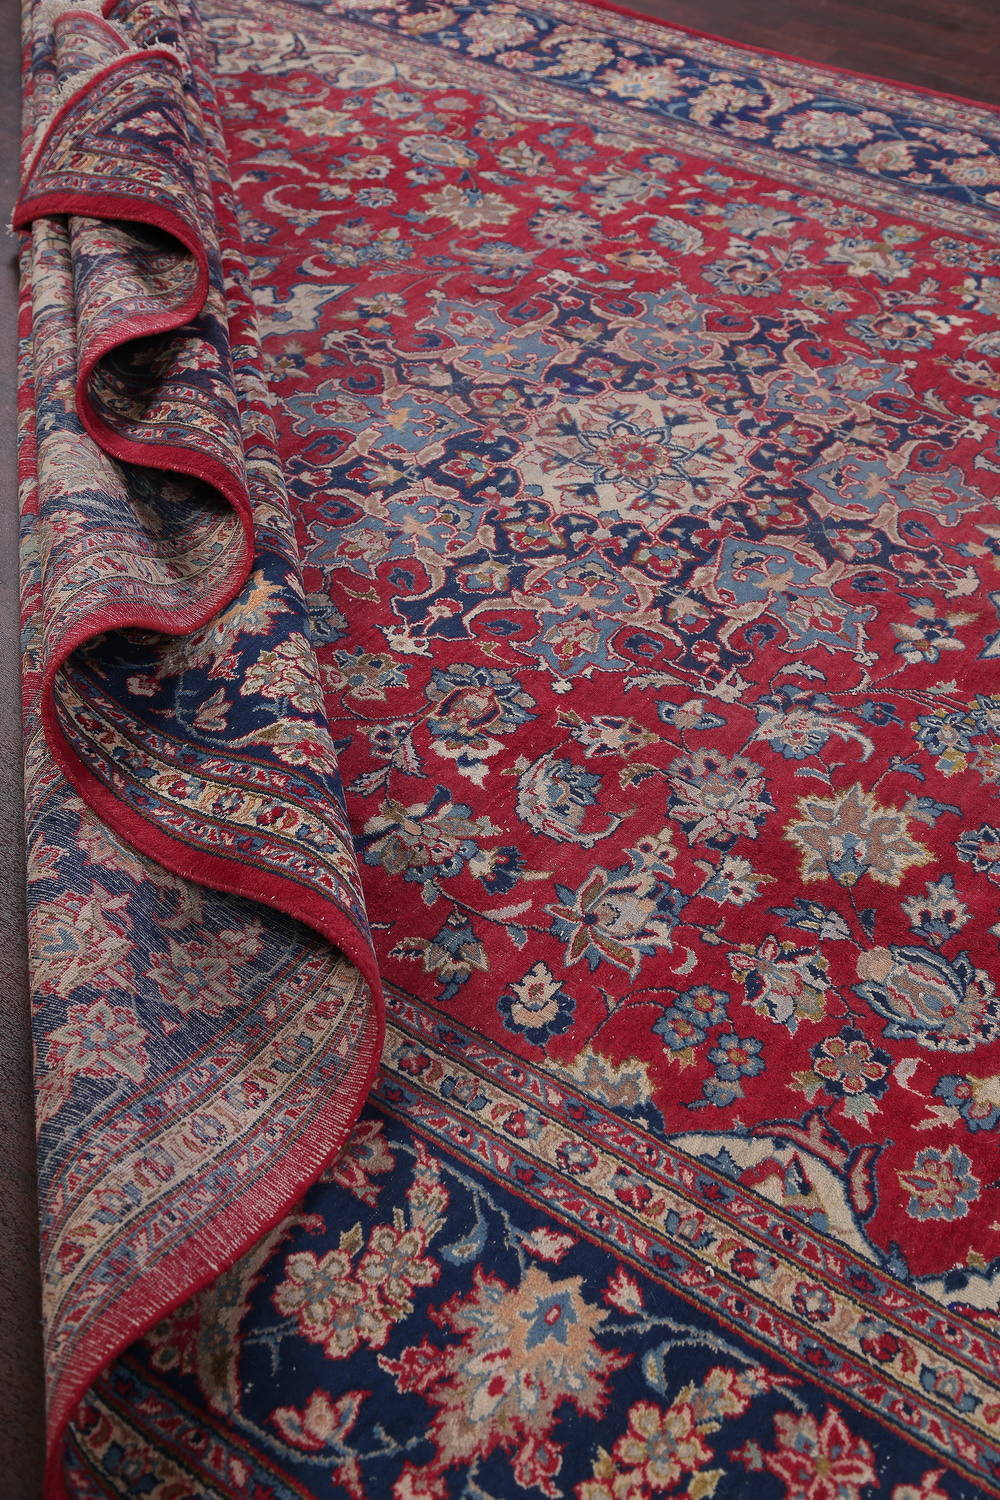 Floral Red Najafabad Isfahan Persian Hand-Knotted Area Rug Wool 11x16